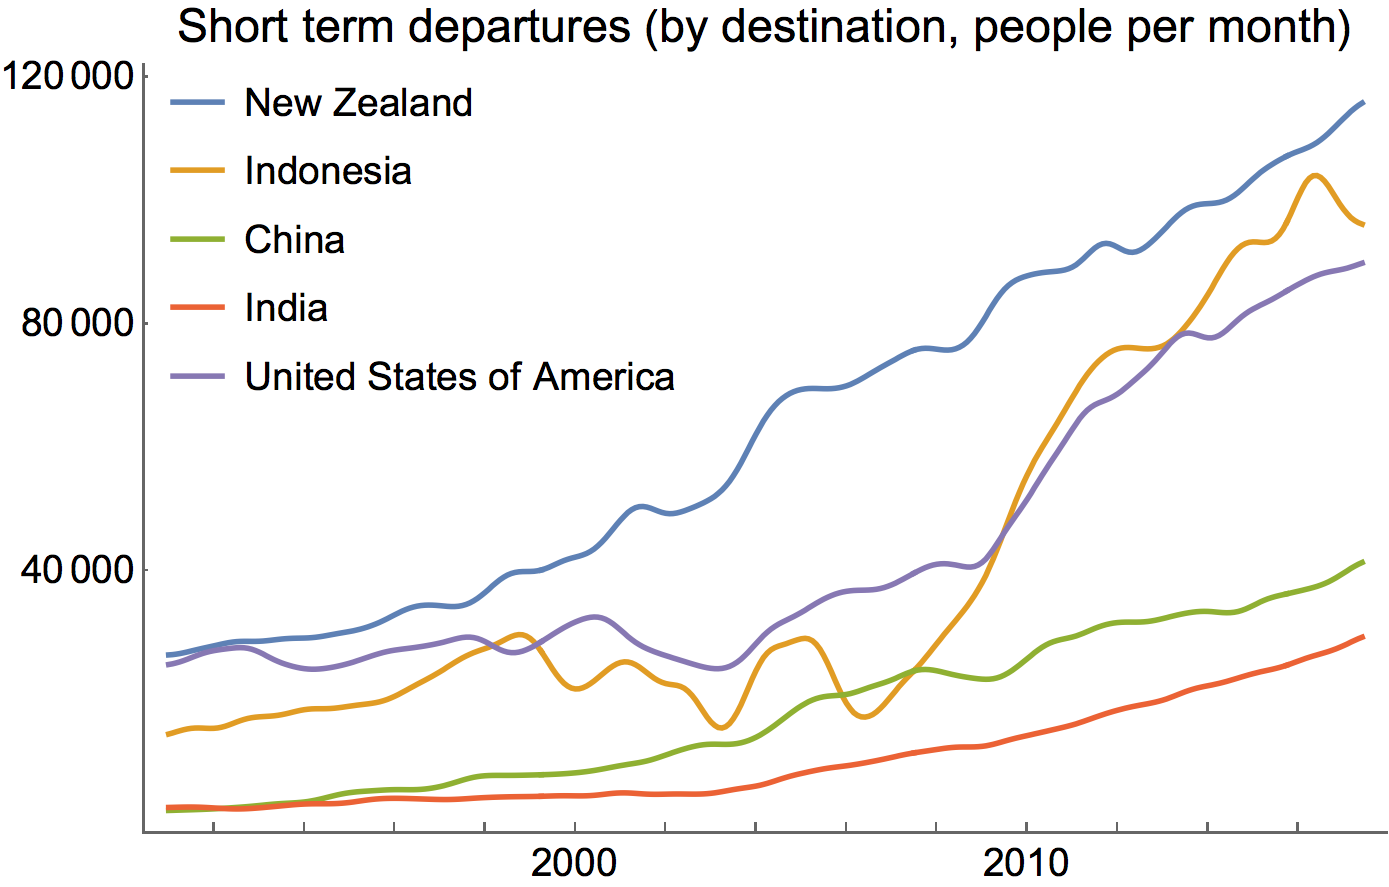 Indonesia rose very quickly as a destination